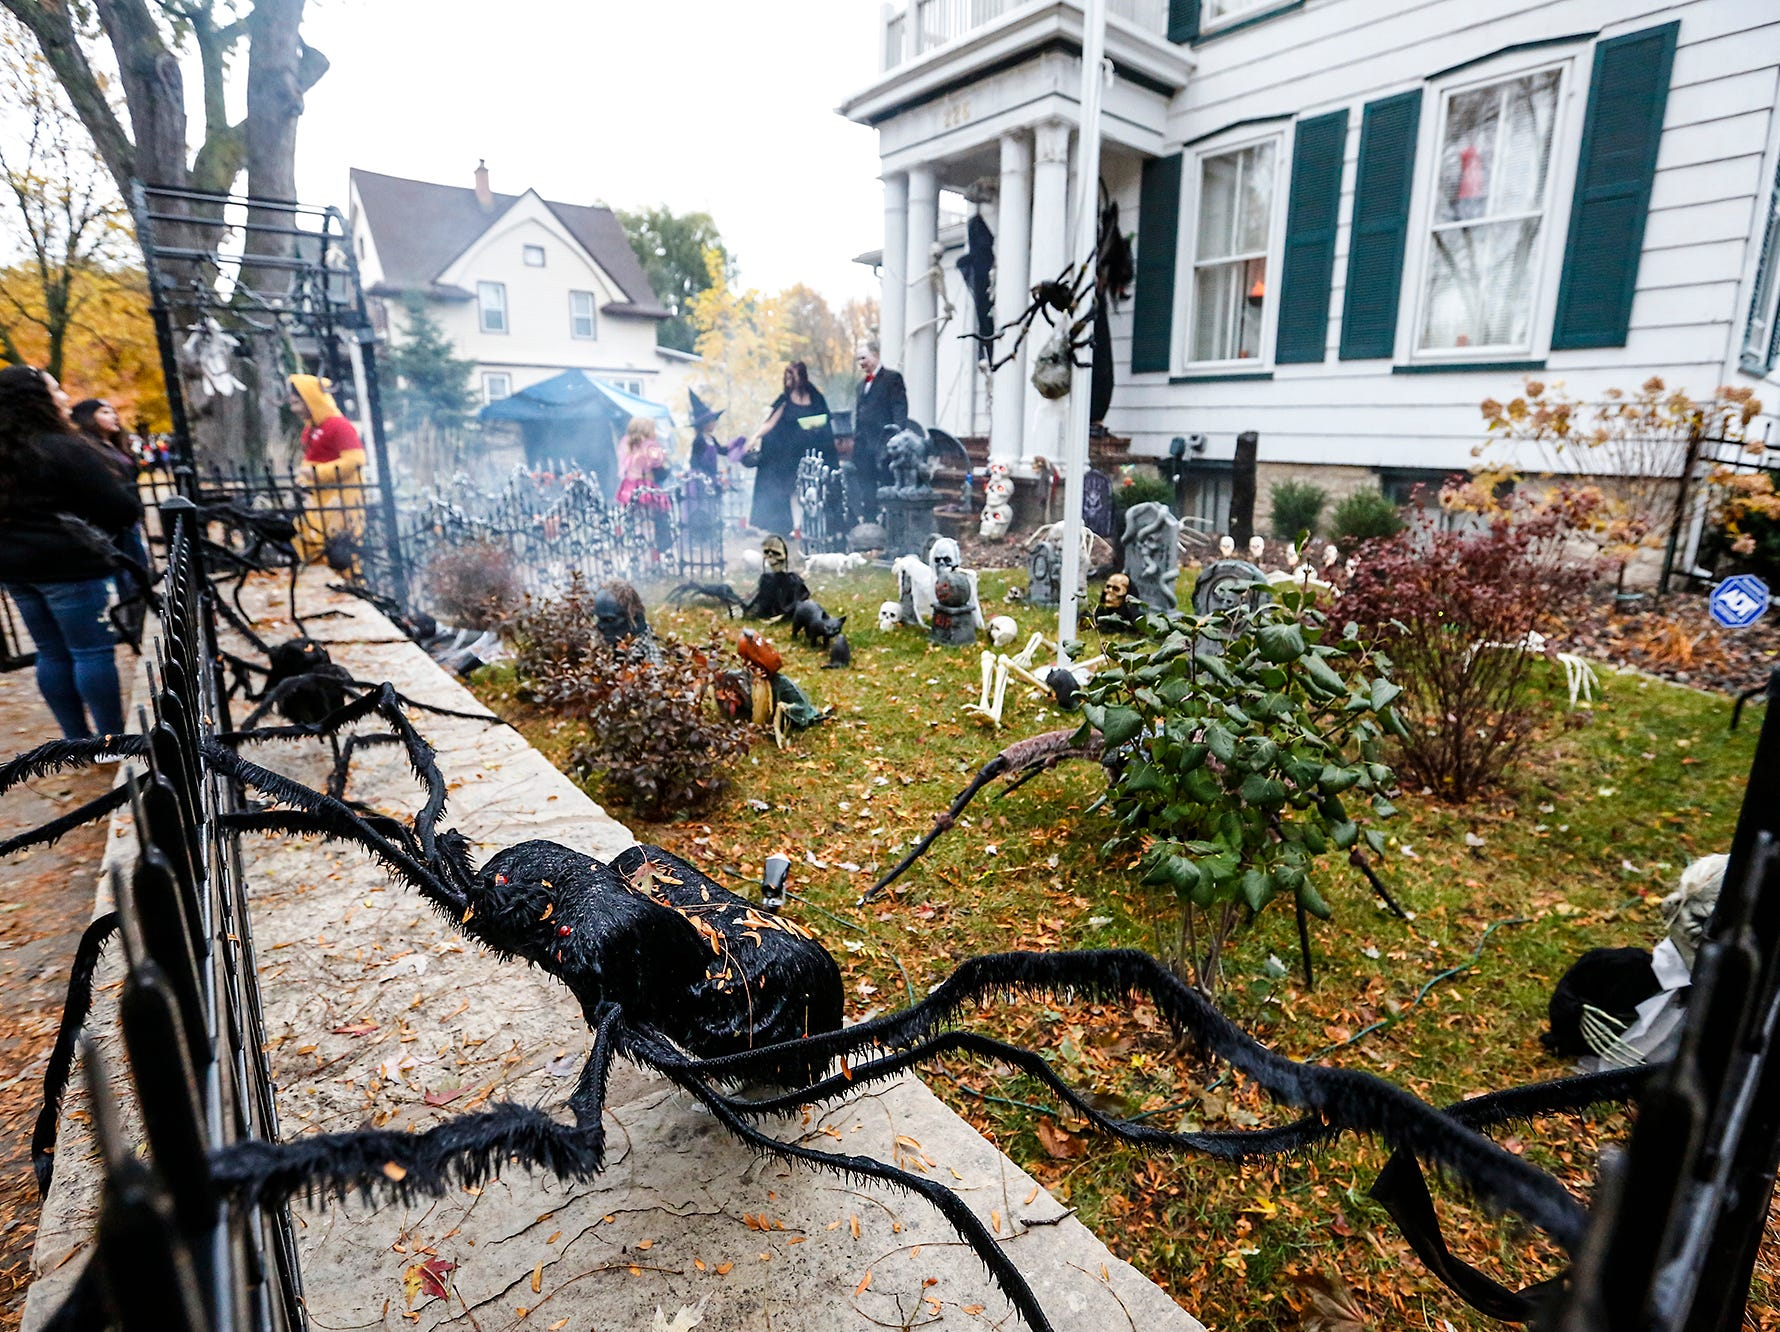 A decorated yard greeted trick or treaters Sunday, October 28, 2018 during trick or treat in Fond du Lac, Wisconsin. Doug Raflik/USA TODAY NETWORK-Wisconsin